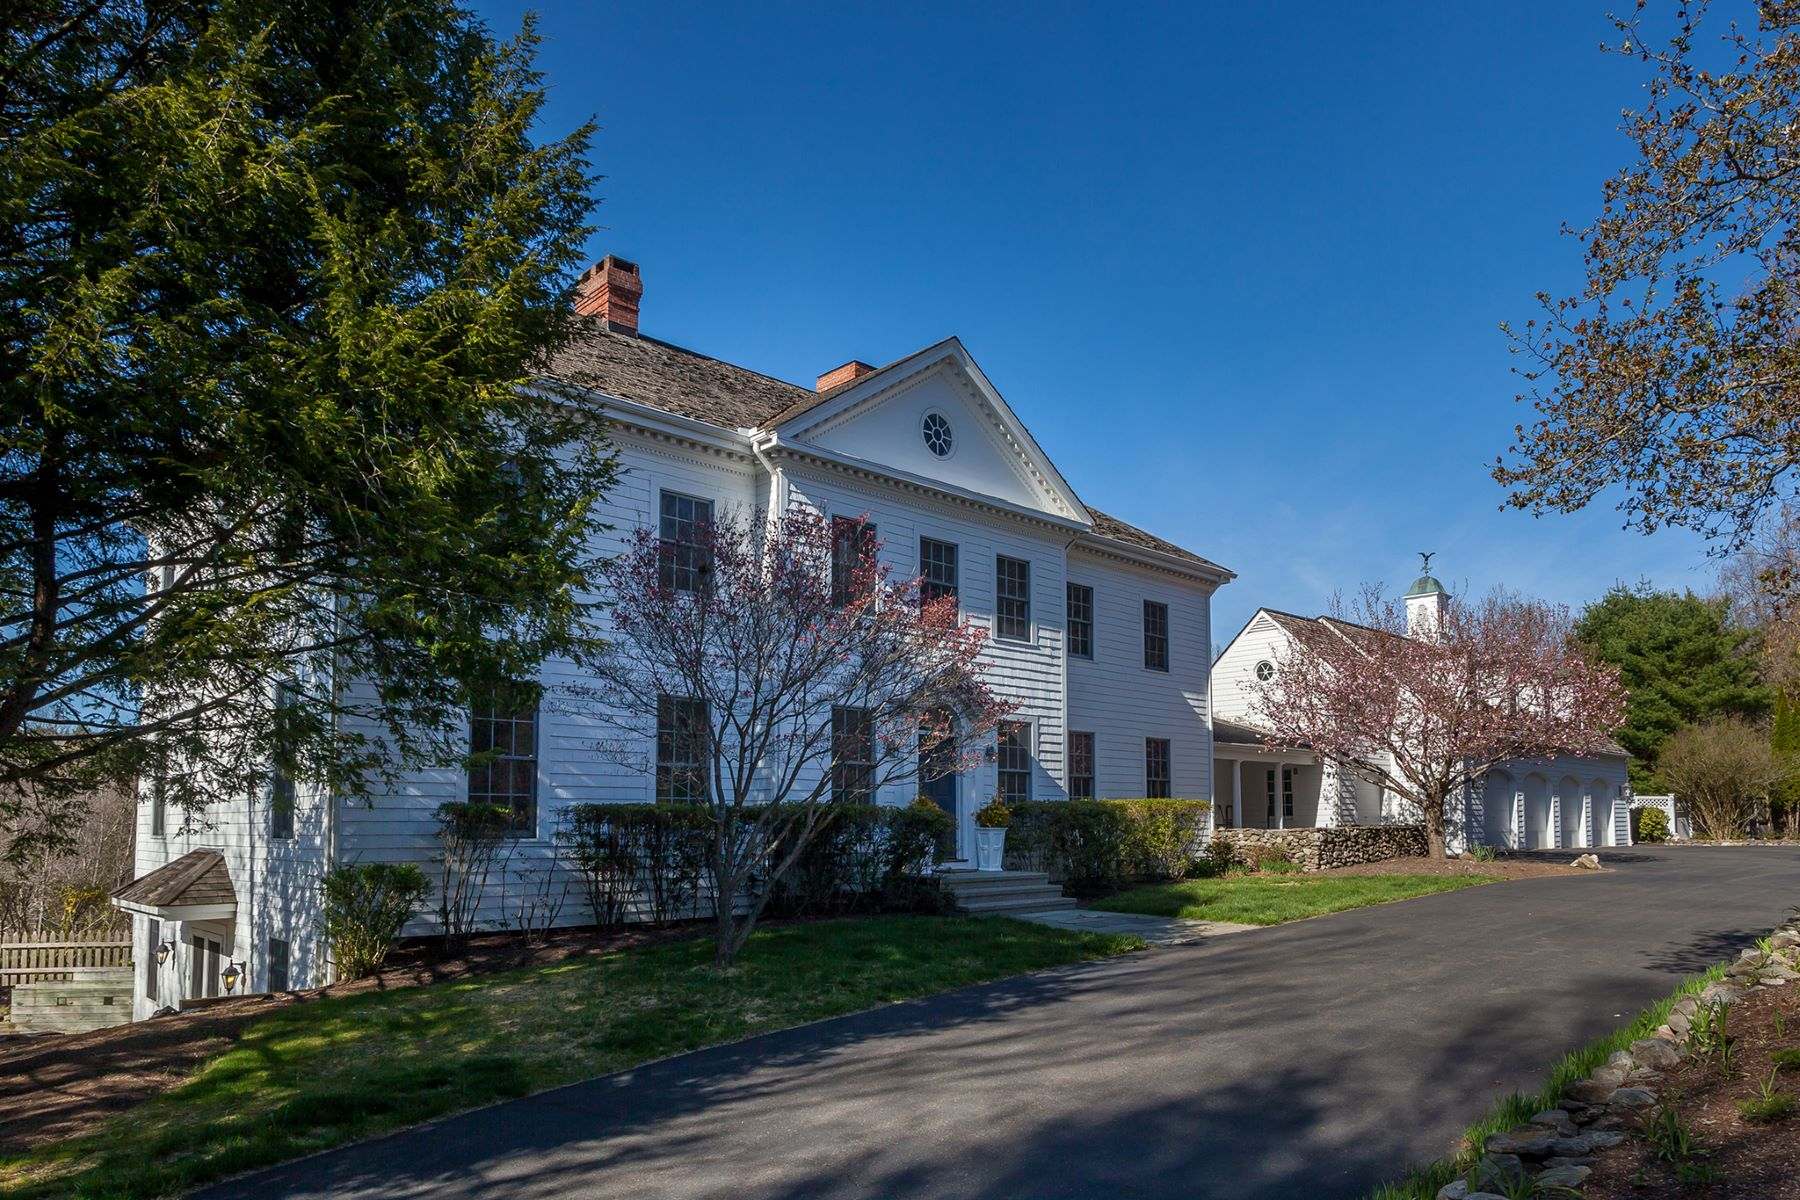 Single Family Home for Sale at Exquisite Georgian Estate 8 Mallory Rd Roxbury, Connecticut, 06783 United States